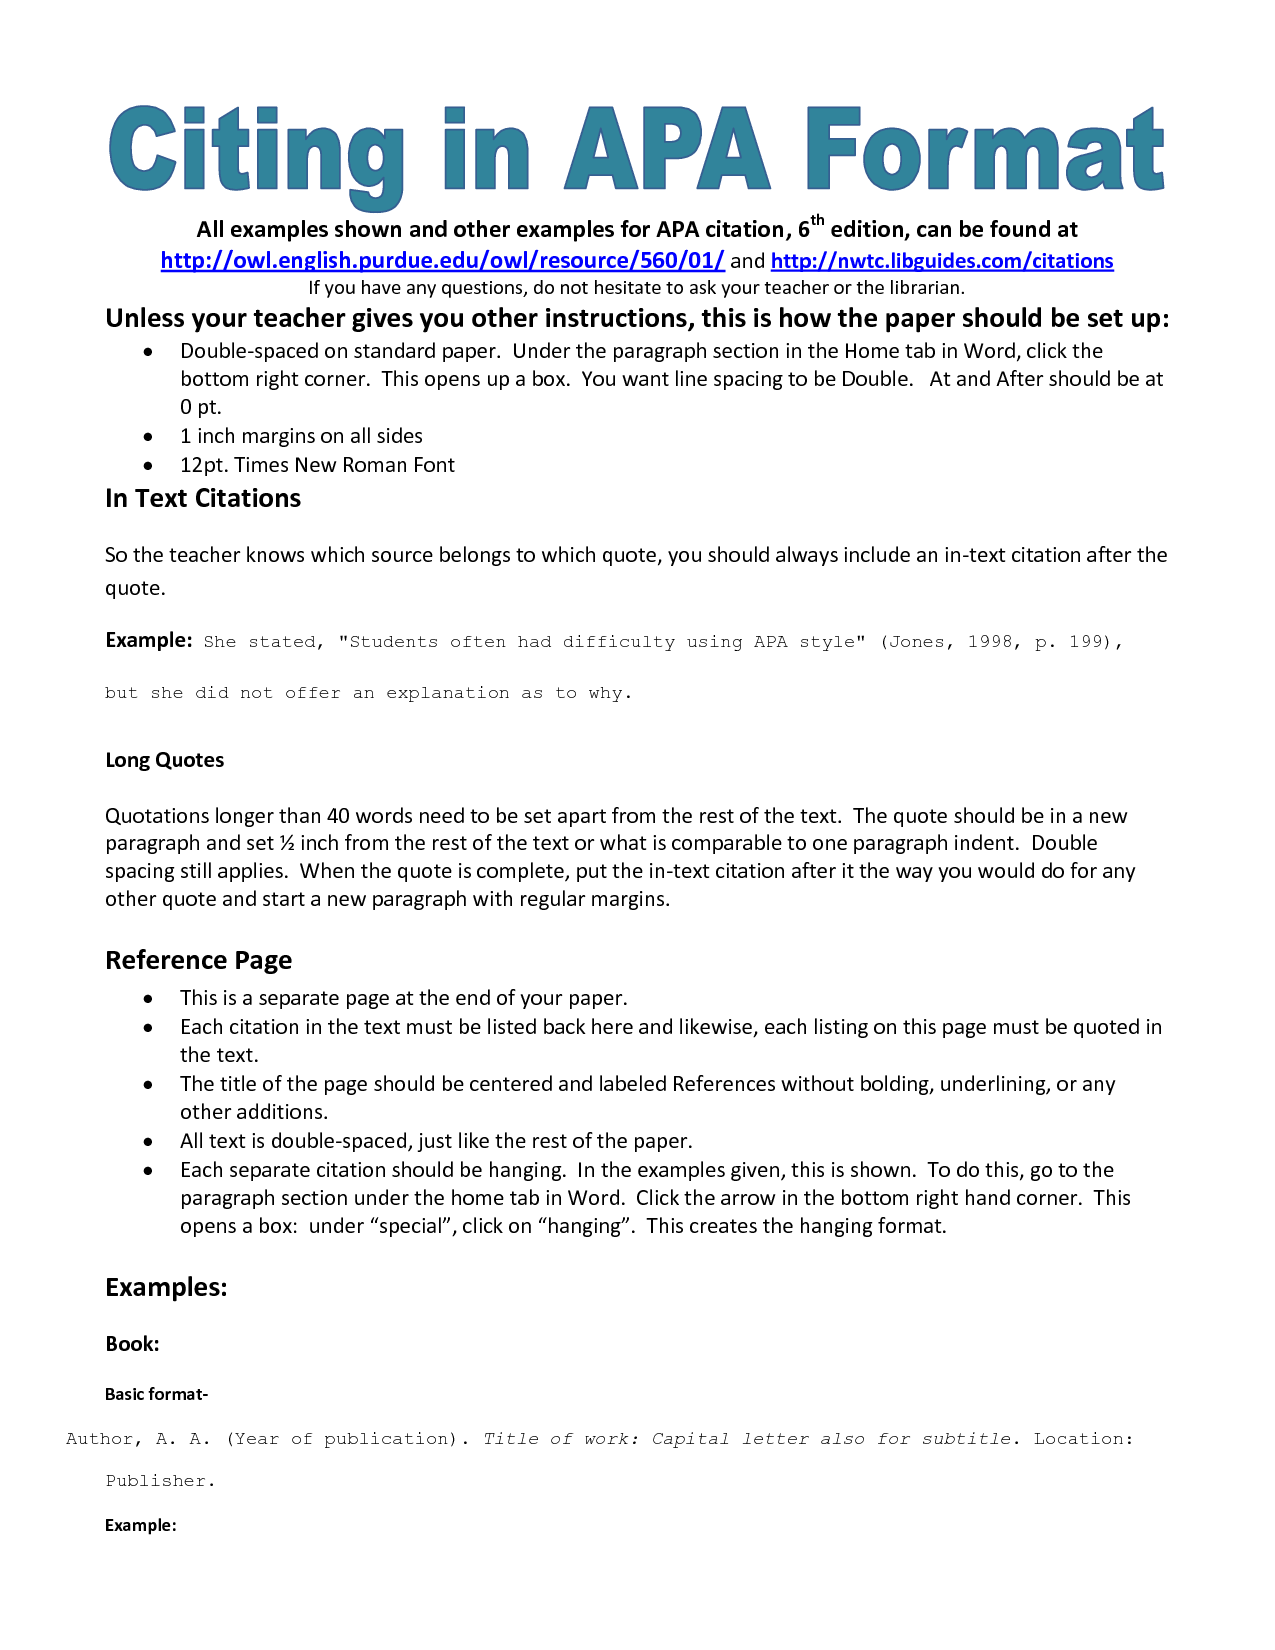 expository essay directions Home / expository essay directions essay expository directions good ways to start a college essay about yourself note insead mba application essay questions usa.